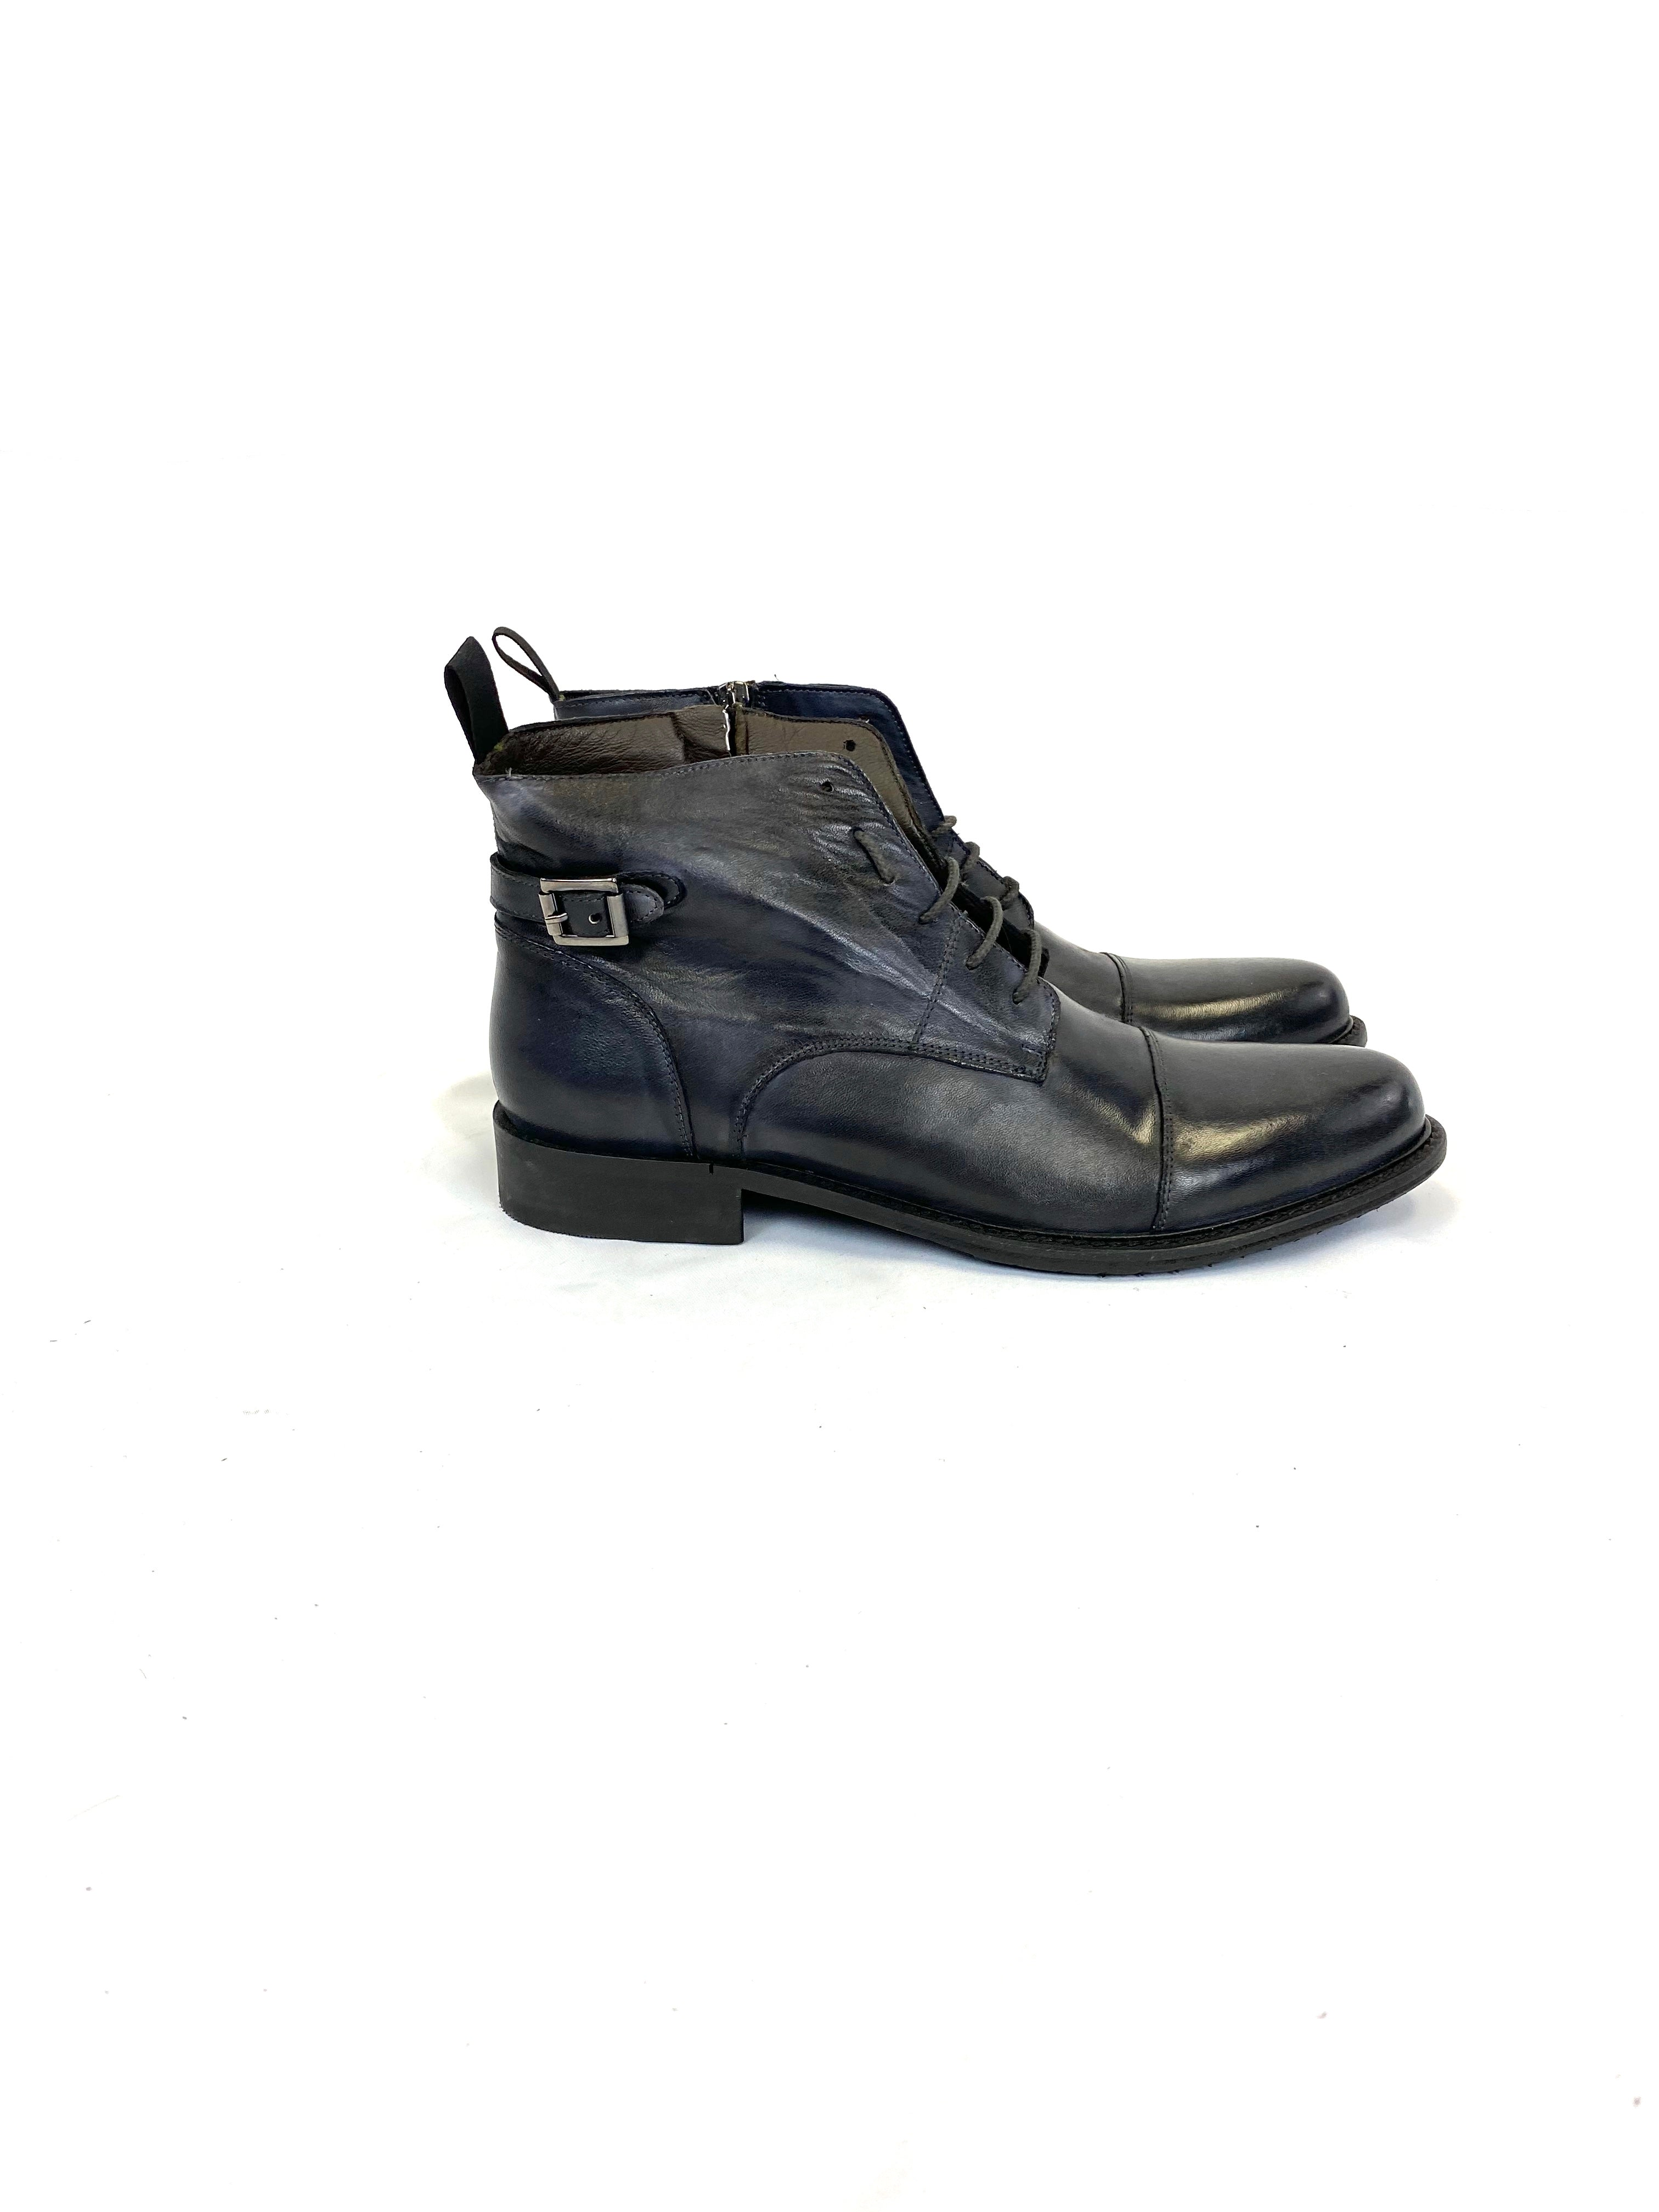 Hamlet Twelve Leather Boot in Anthracite